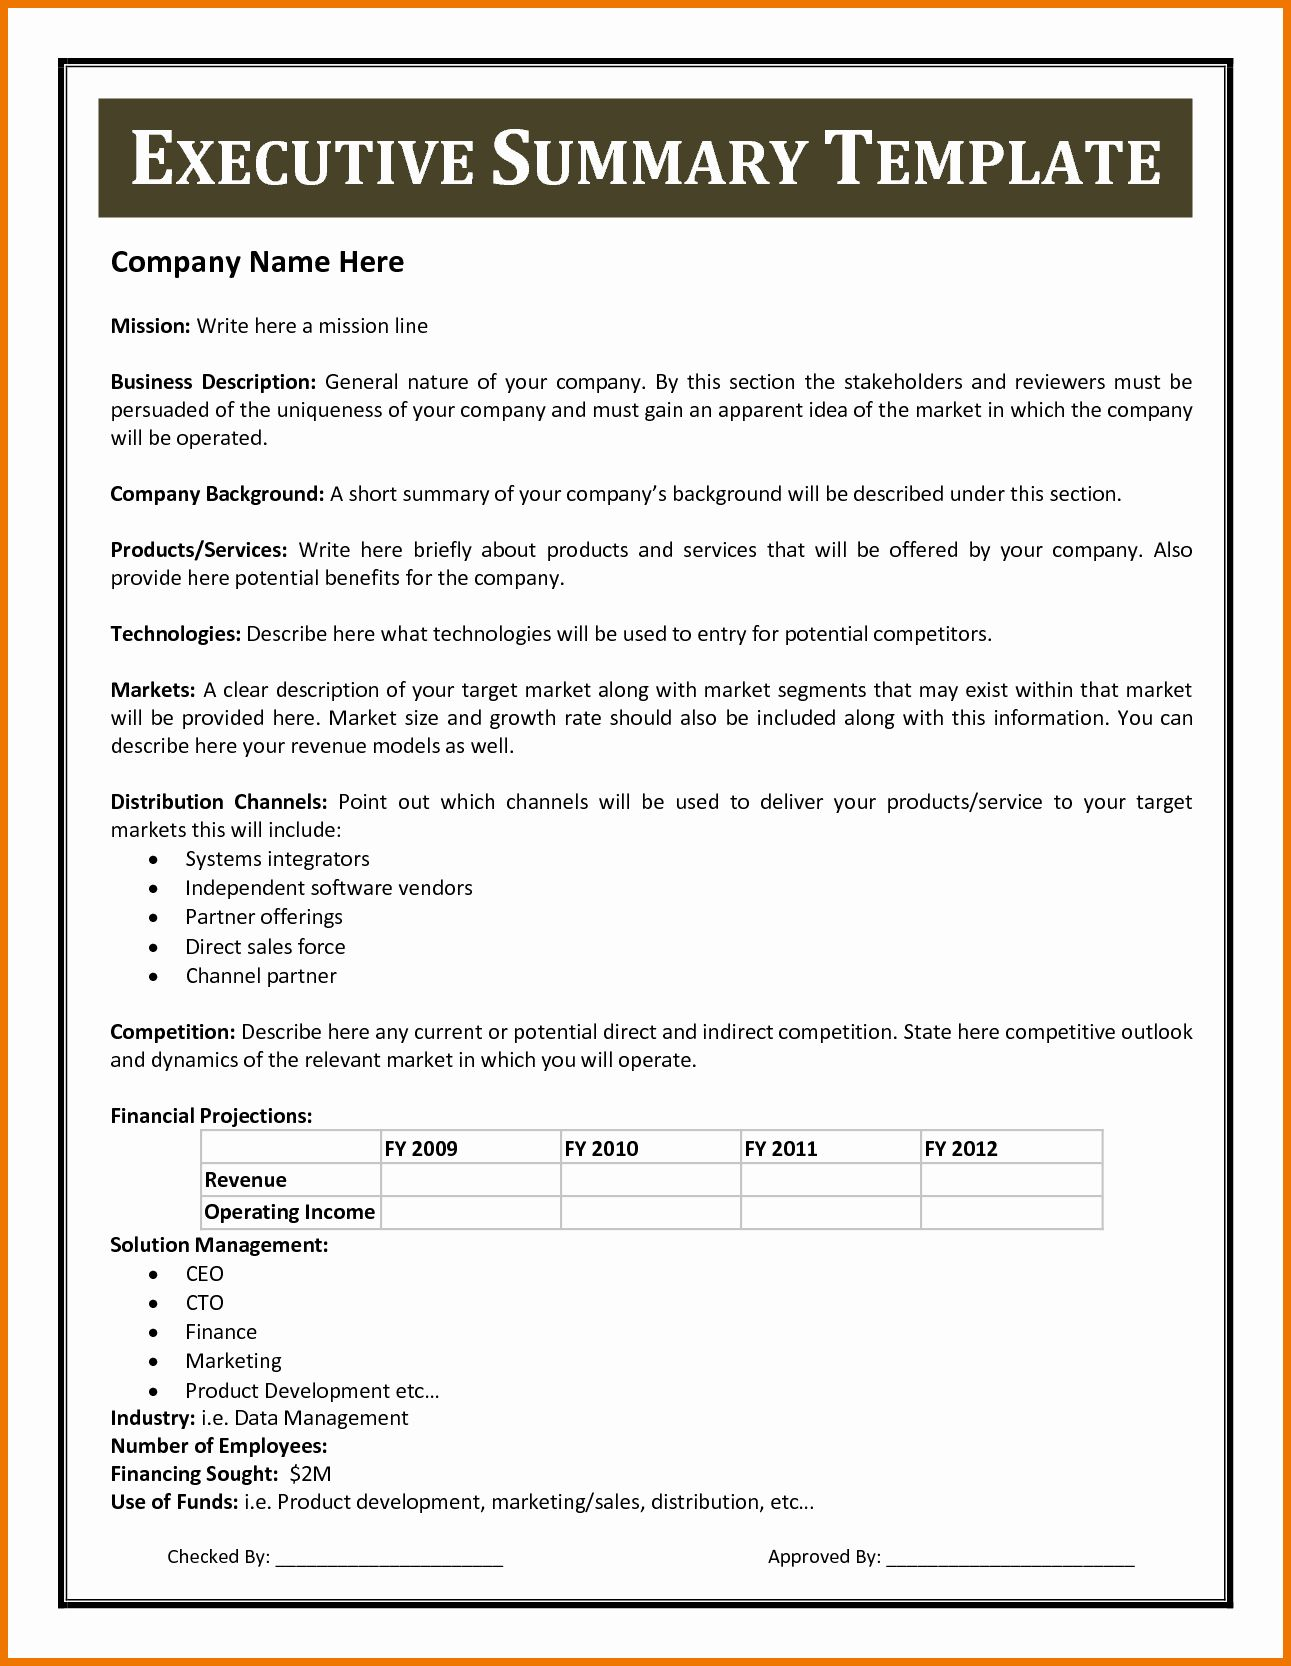 Executive Summary Template for Report Lovely Executive